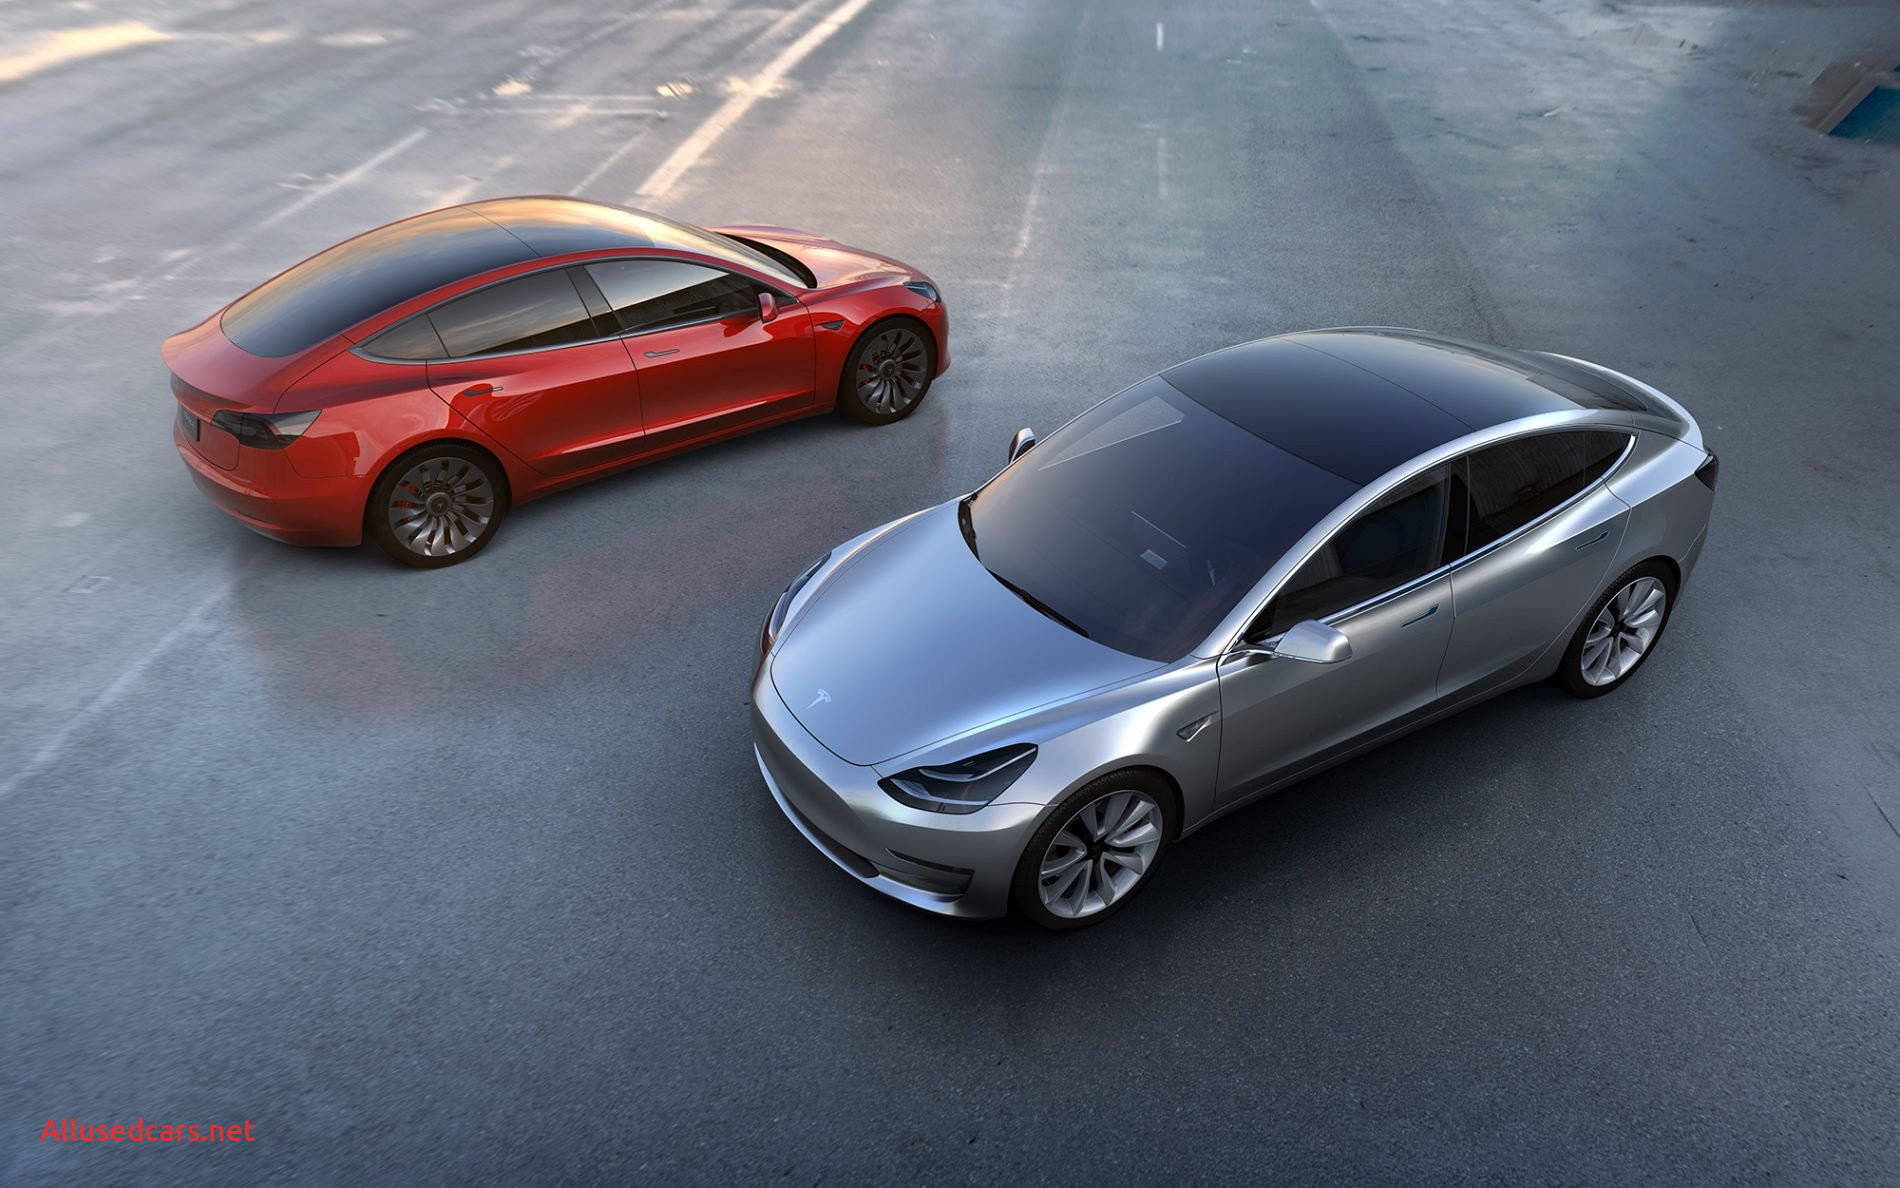 Rent A Tesla Las Vegas Fresh Revealed the Tesla Model 3 Fers 215 Miles Of Range and A